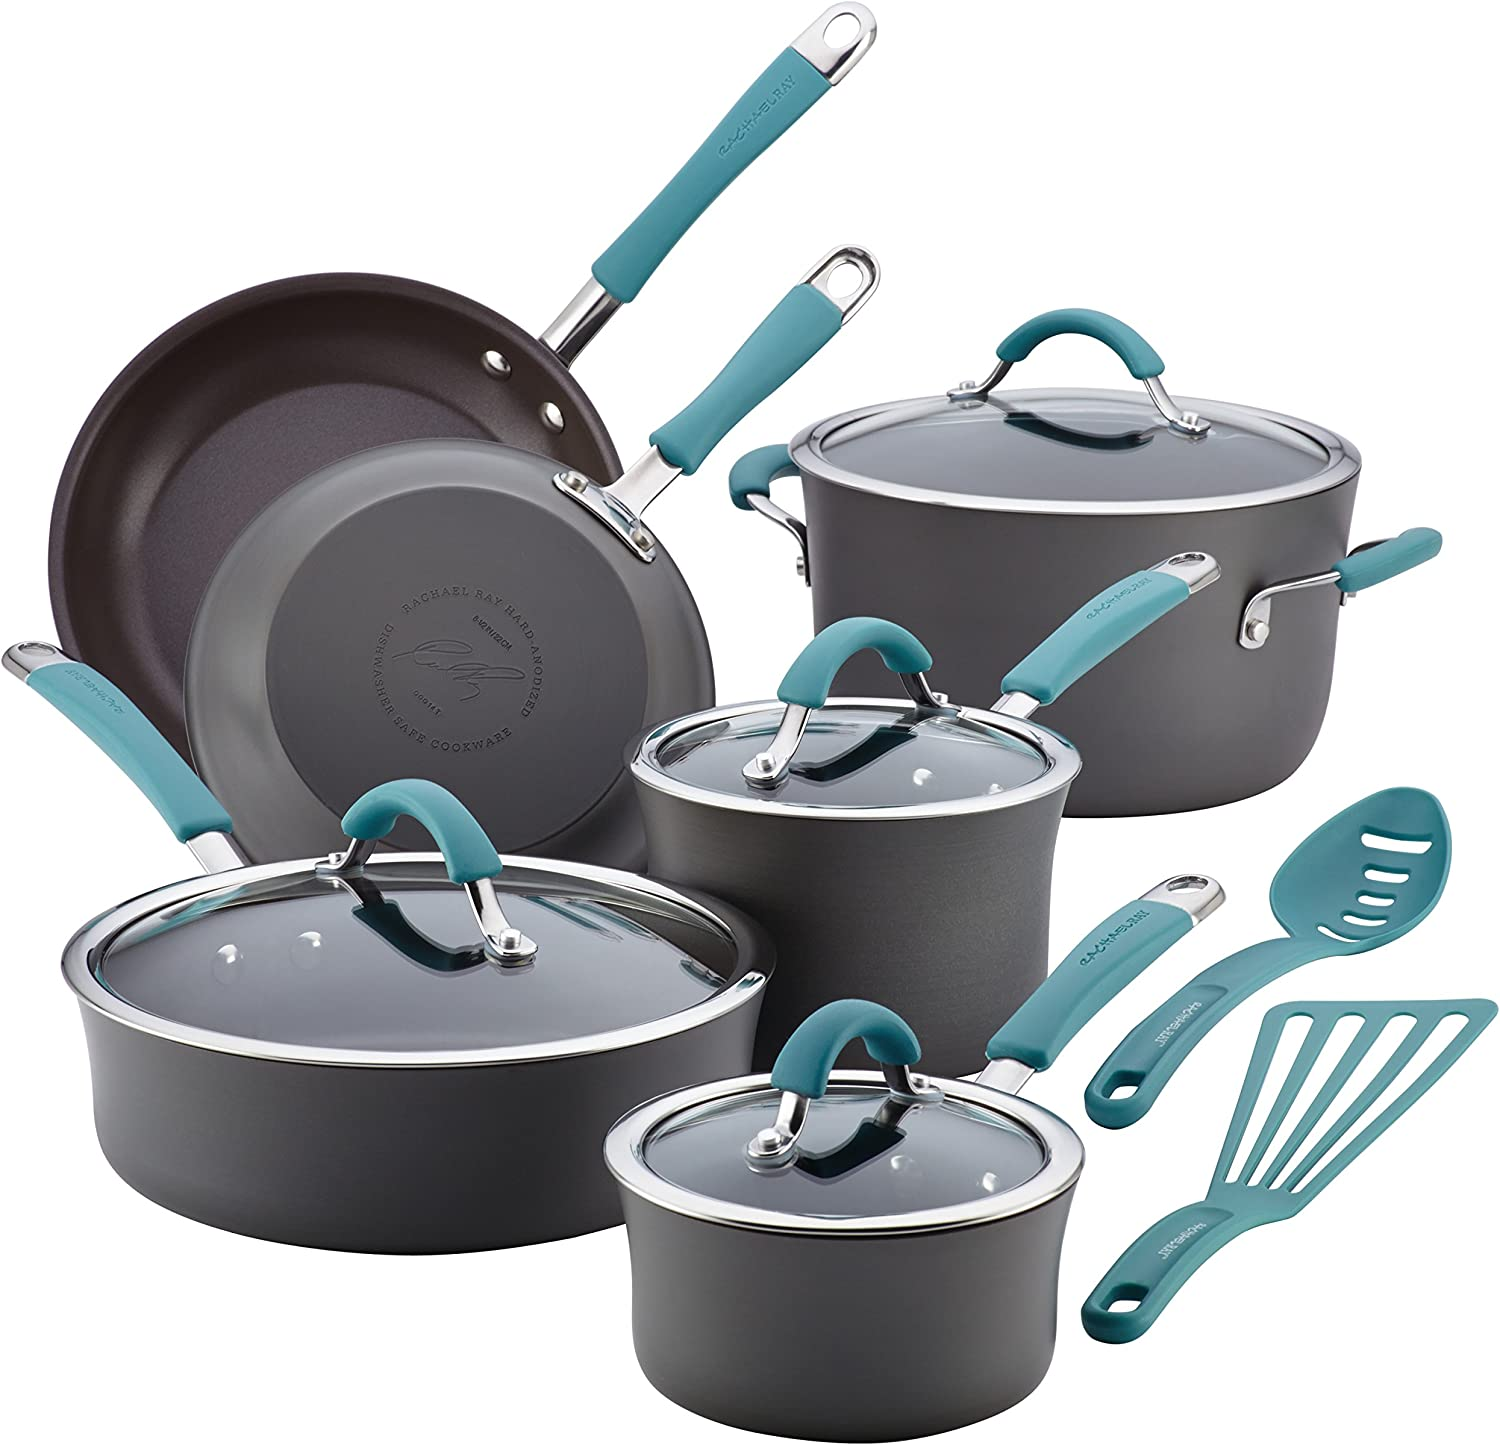 Top 10 Best Signature Cookware For Gas Stove [ Buying Guide -2021] 4